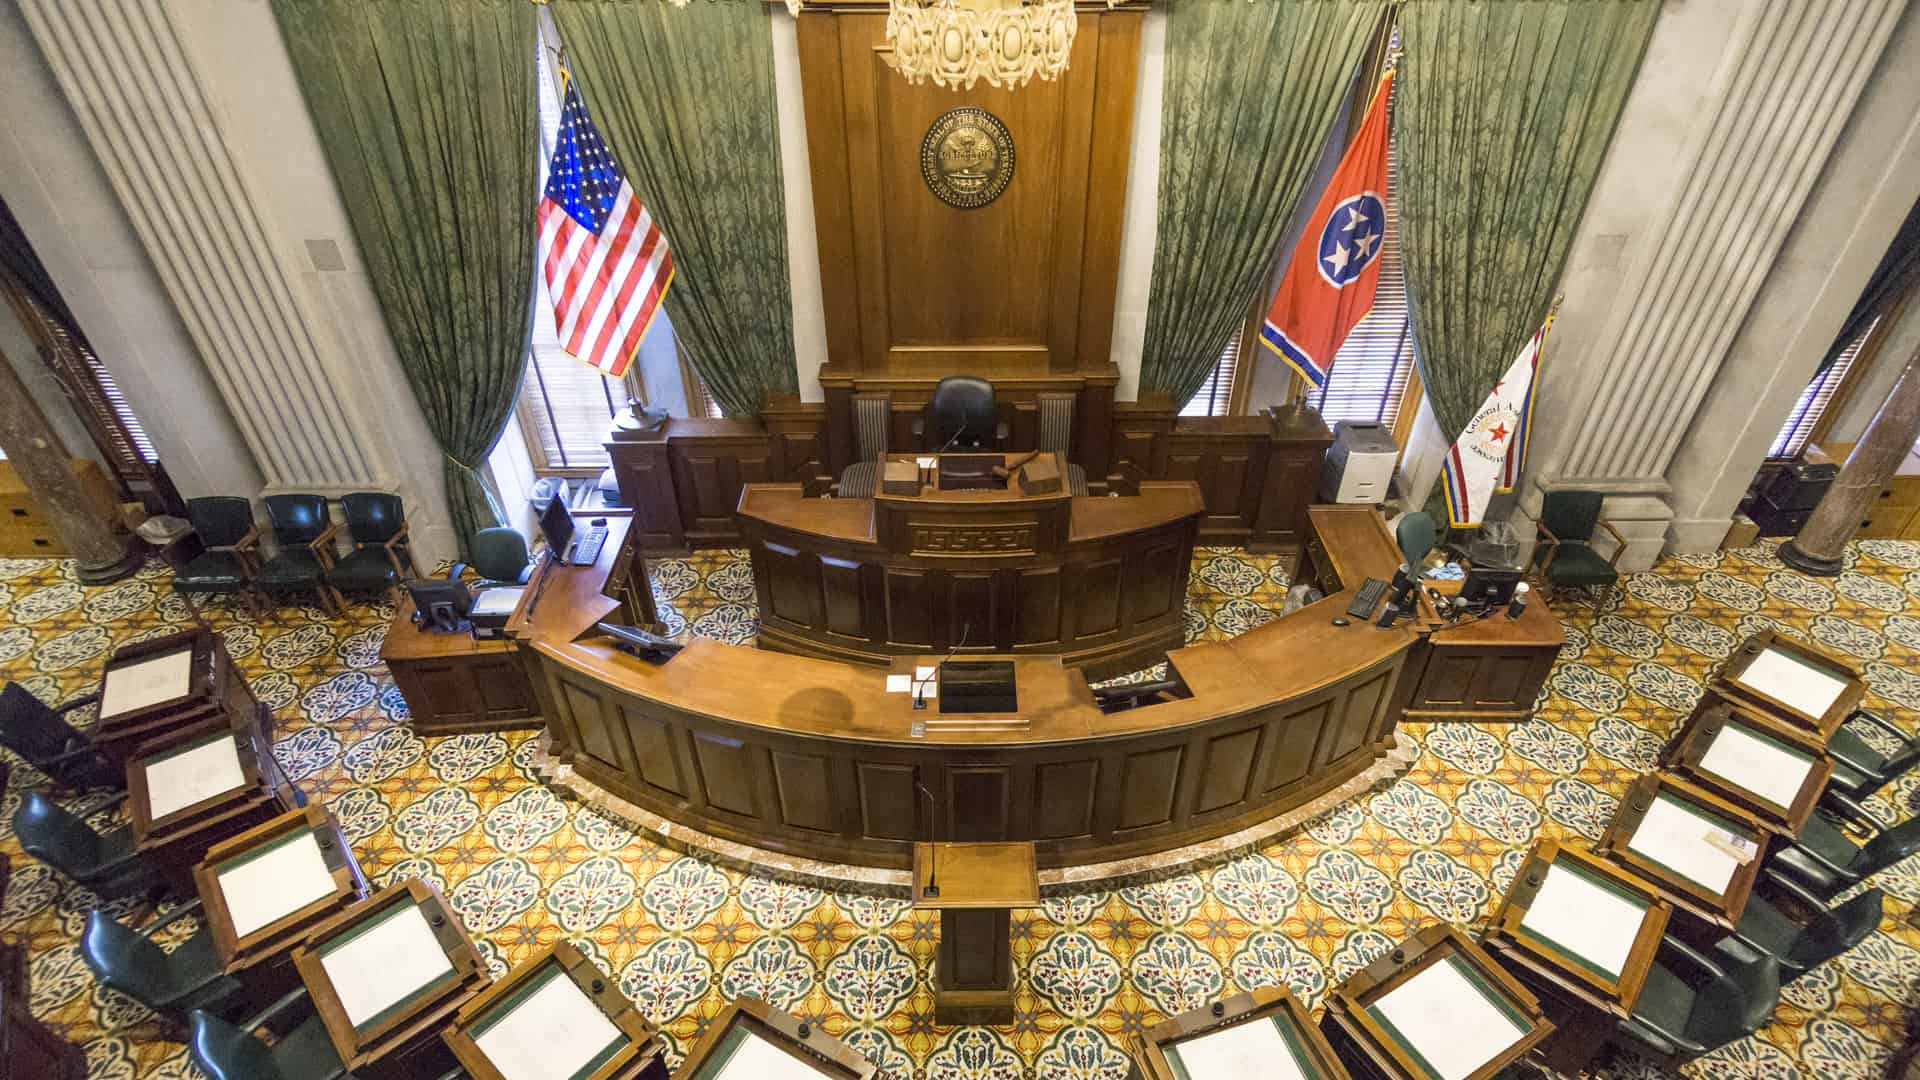 TN State Capitol Senate Chamber, Photo Credit: CC BY-SA 4.0 Wikimedia Commons by Kenneth C. Zirkel, October 2016